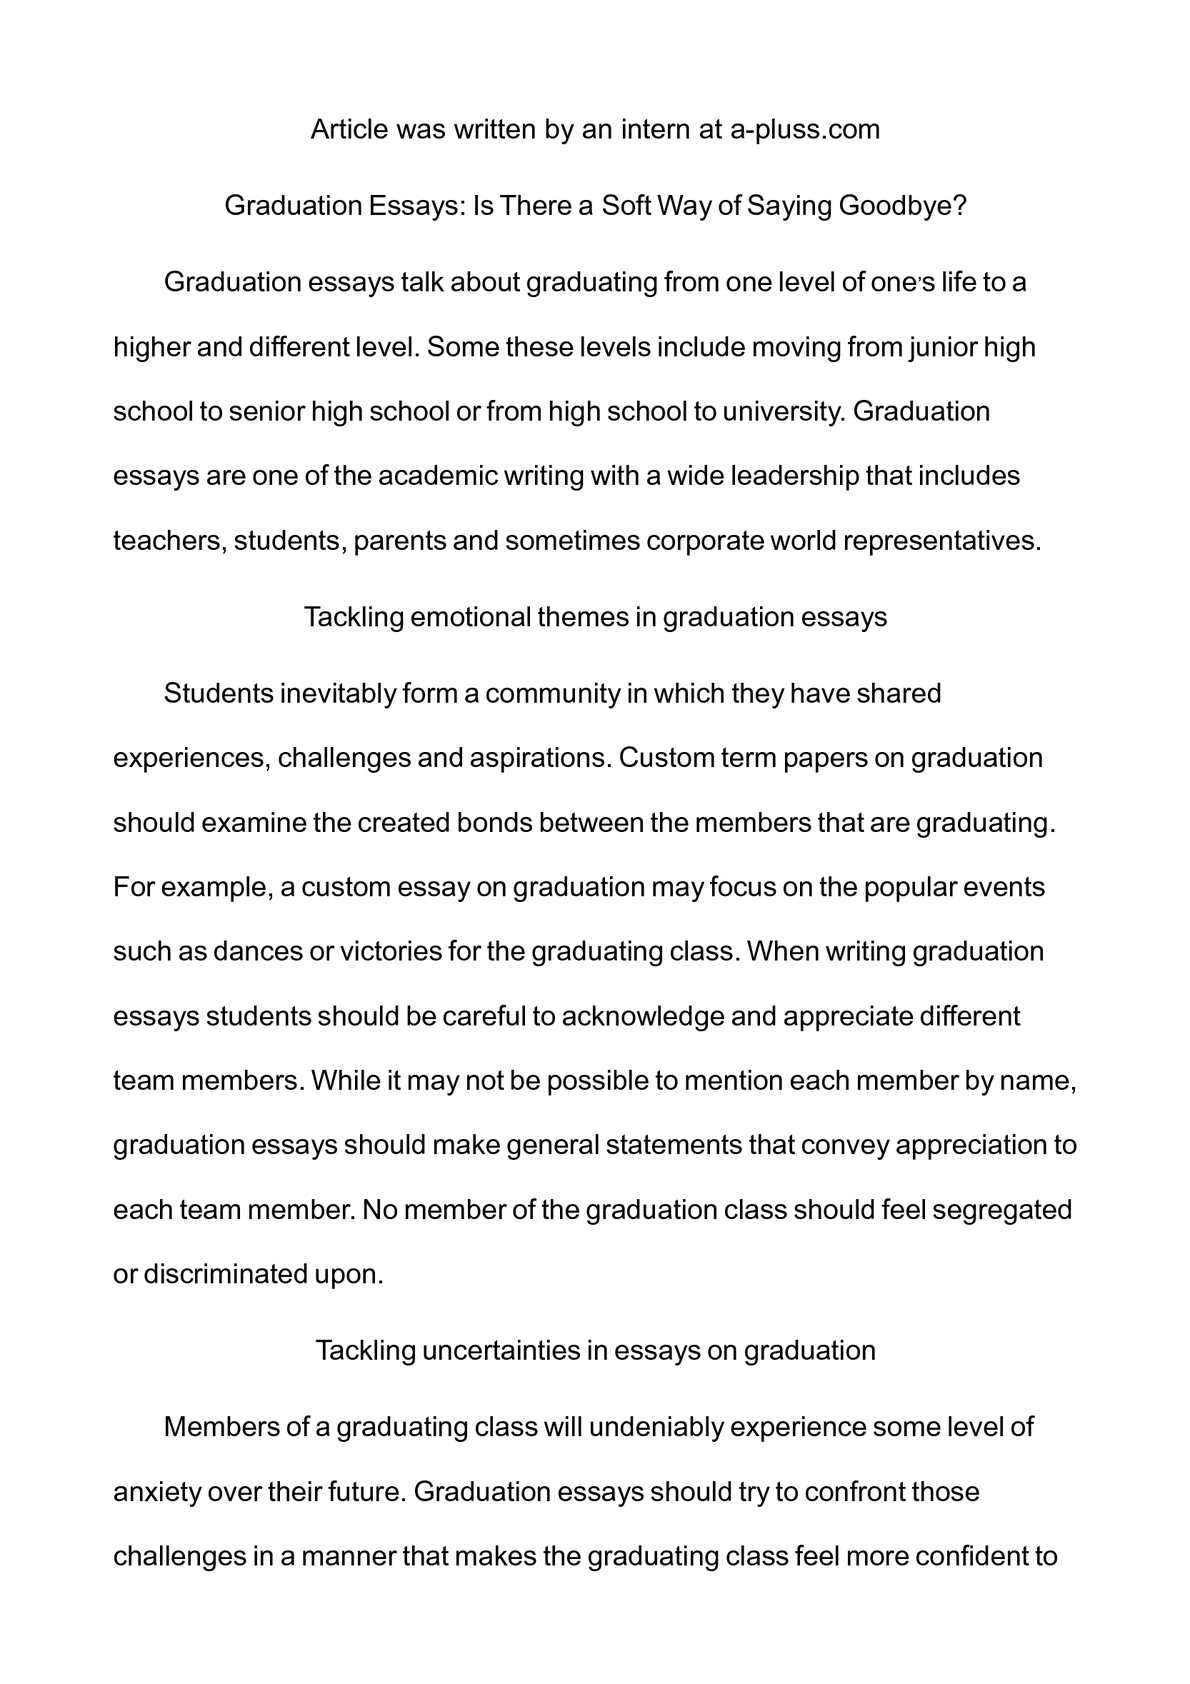 004 Essay Example P1 Formidable Truth Conclusion Alone Triumphs In English Titles Full